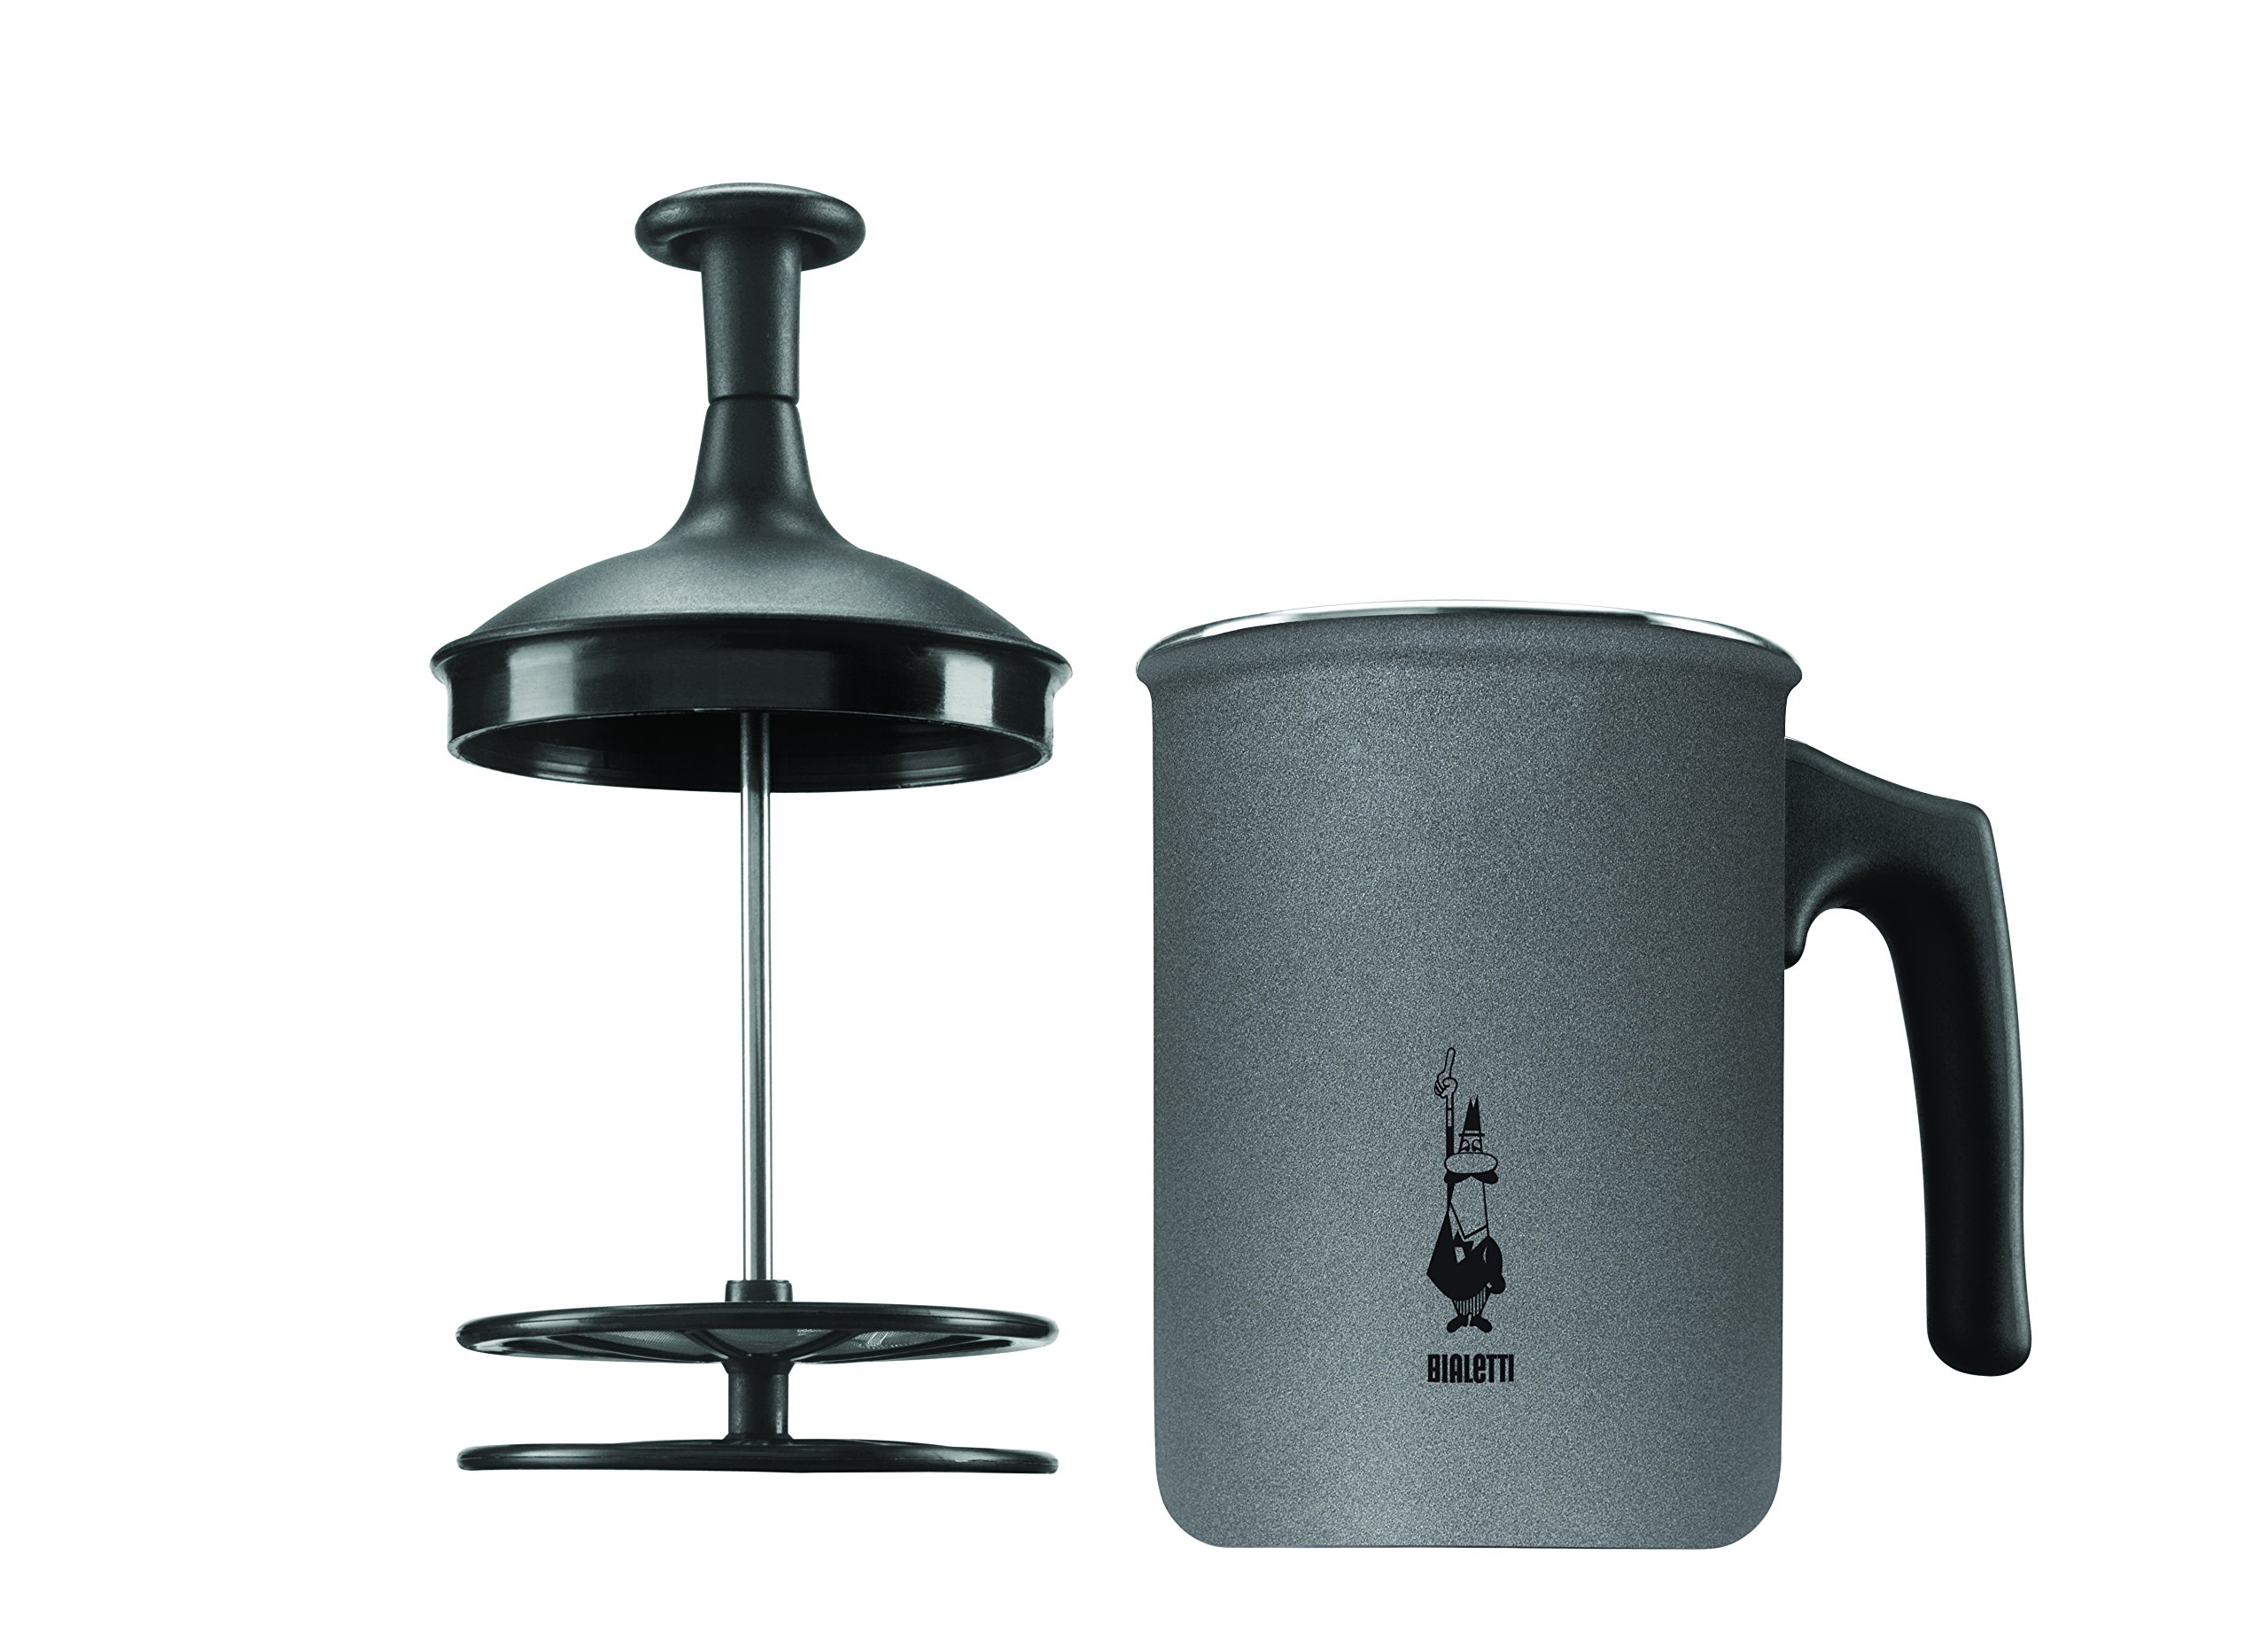 La Cafetiere Bialetti Tuttocrema Frothing Jug, Teflon Non Stick Surface and Double Filter For Extra Frothy Milk